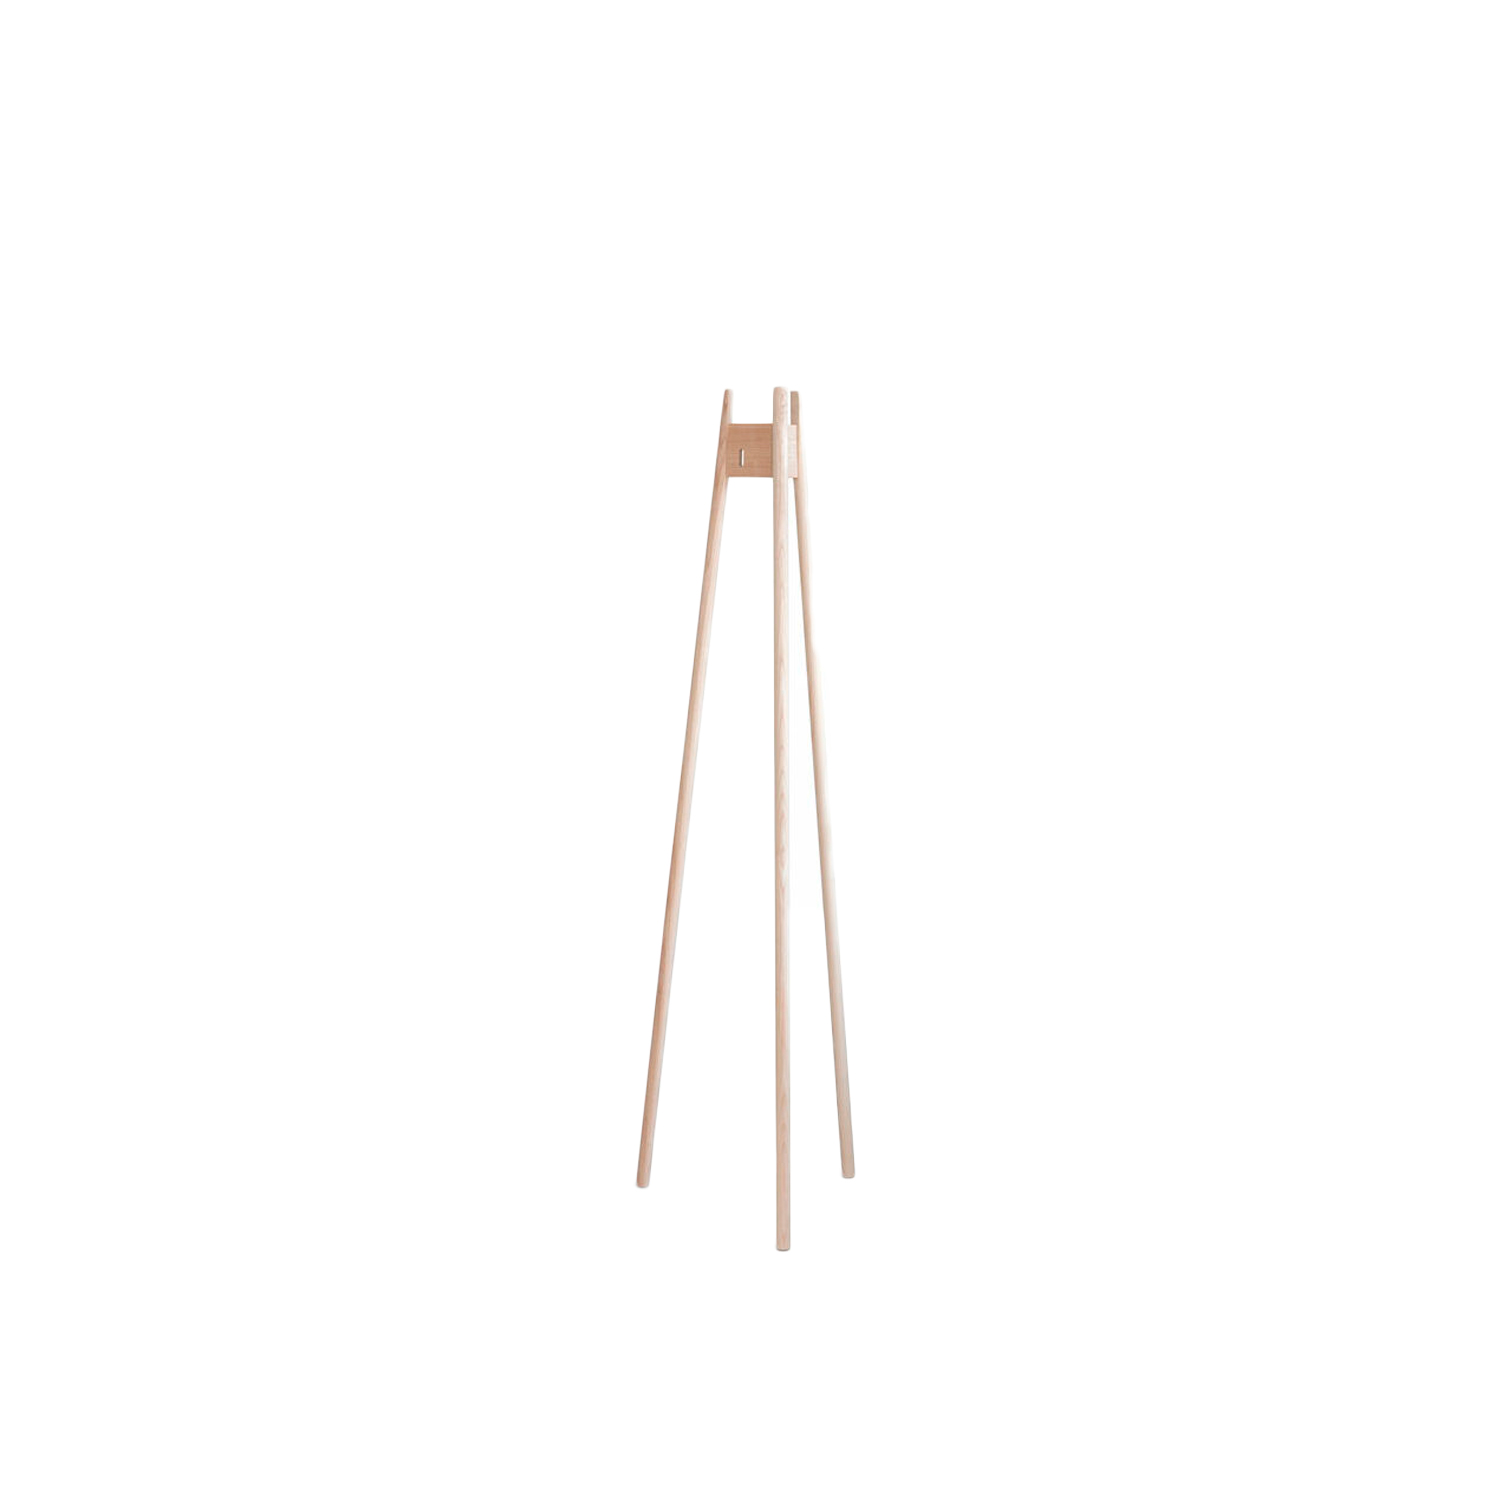 Arkitecture Coat Rack - The Arkitecture coat rack is lightweight, easily movable and minimalistic. The more jackets it carries, the steadier it becomes. Includes a place for a hanger.  This coat rack is available in ash with an oiled finish.   | Matter of Stuff